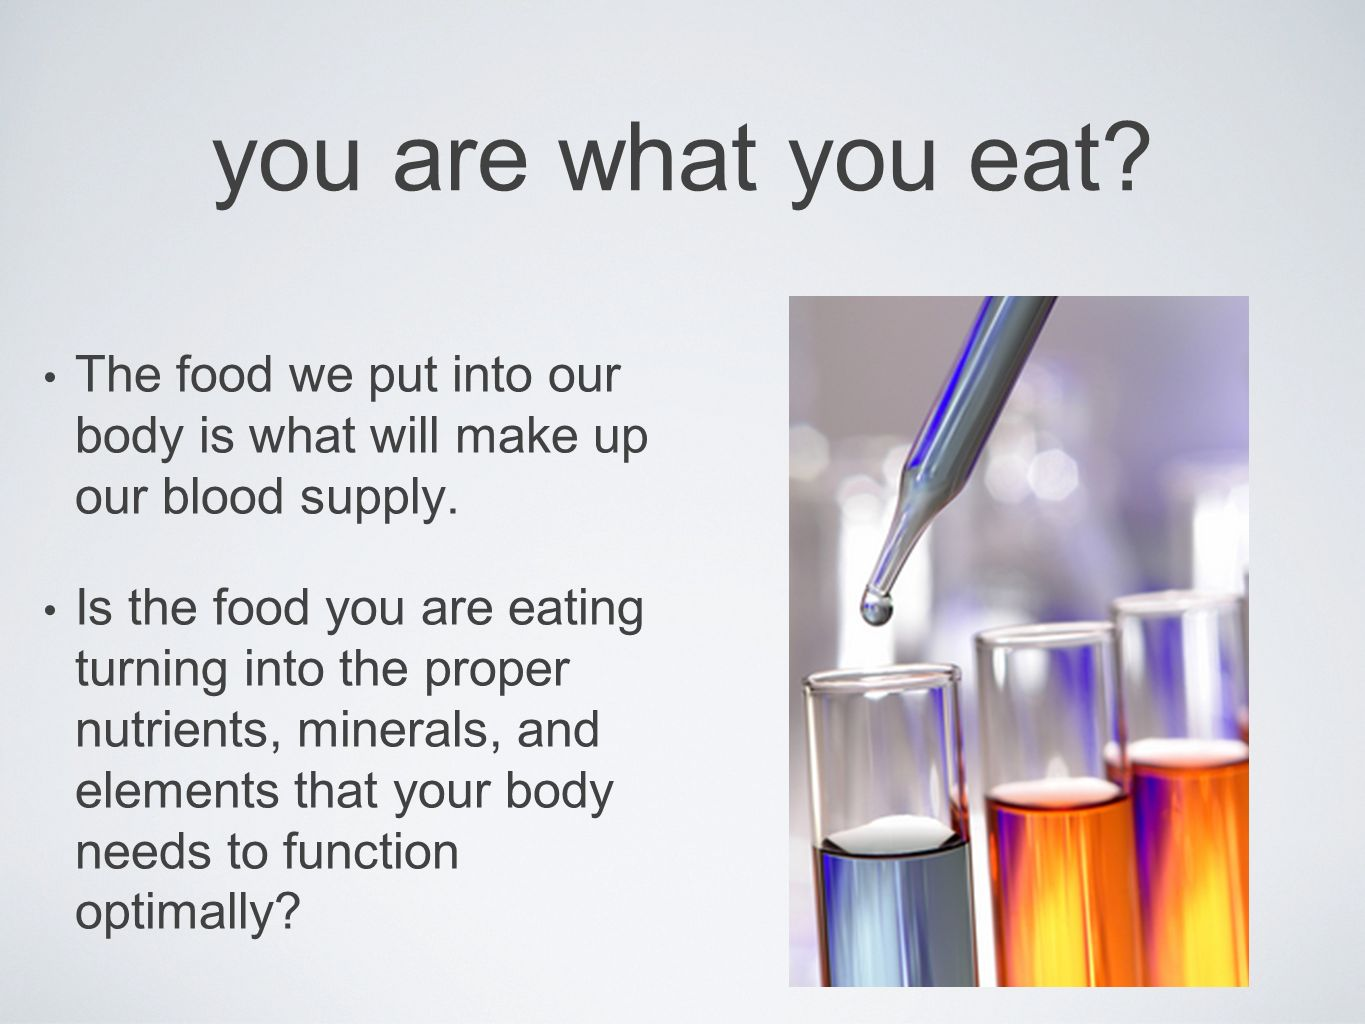 you are what you eat? The food we put into our body is what will make up our blood supply. Is the food you are eating turning into the proper nutrient